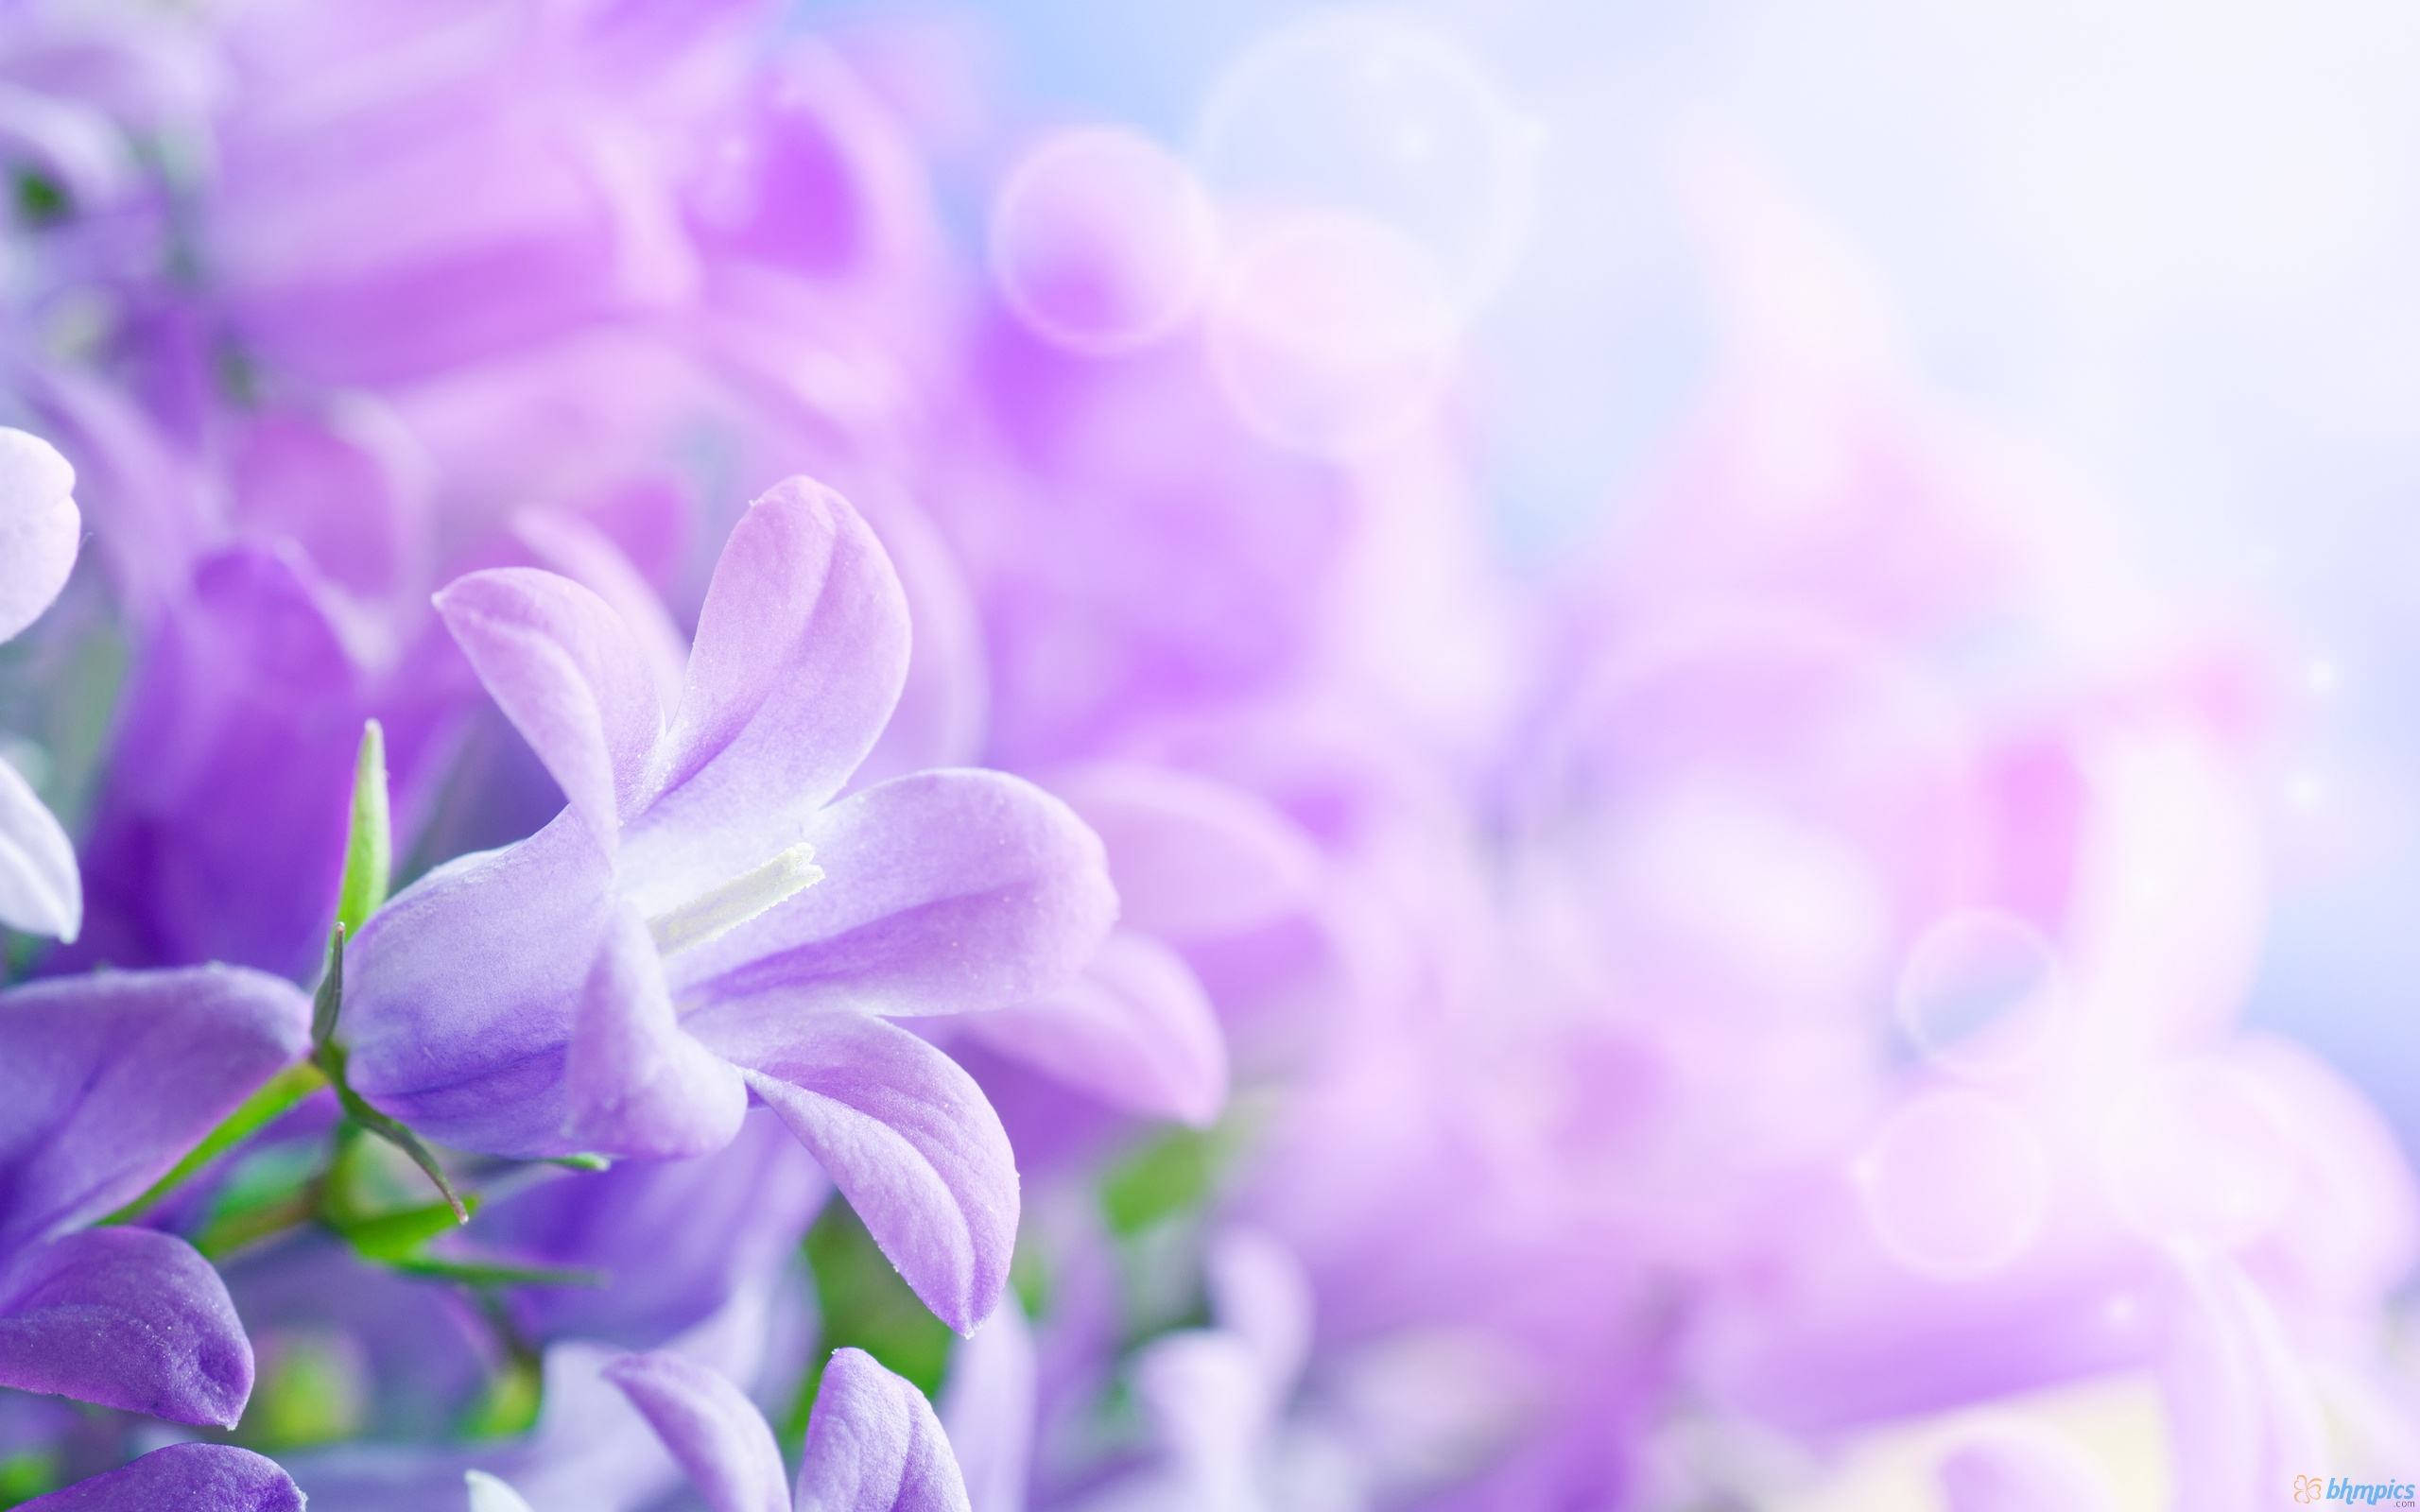 (2560x1600 px) - Stunning Flower Wallpapers, Shaquana Maley